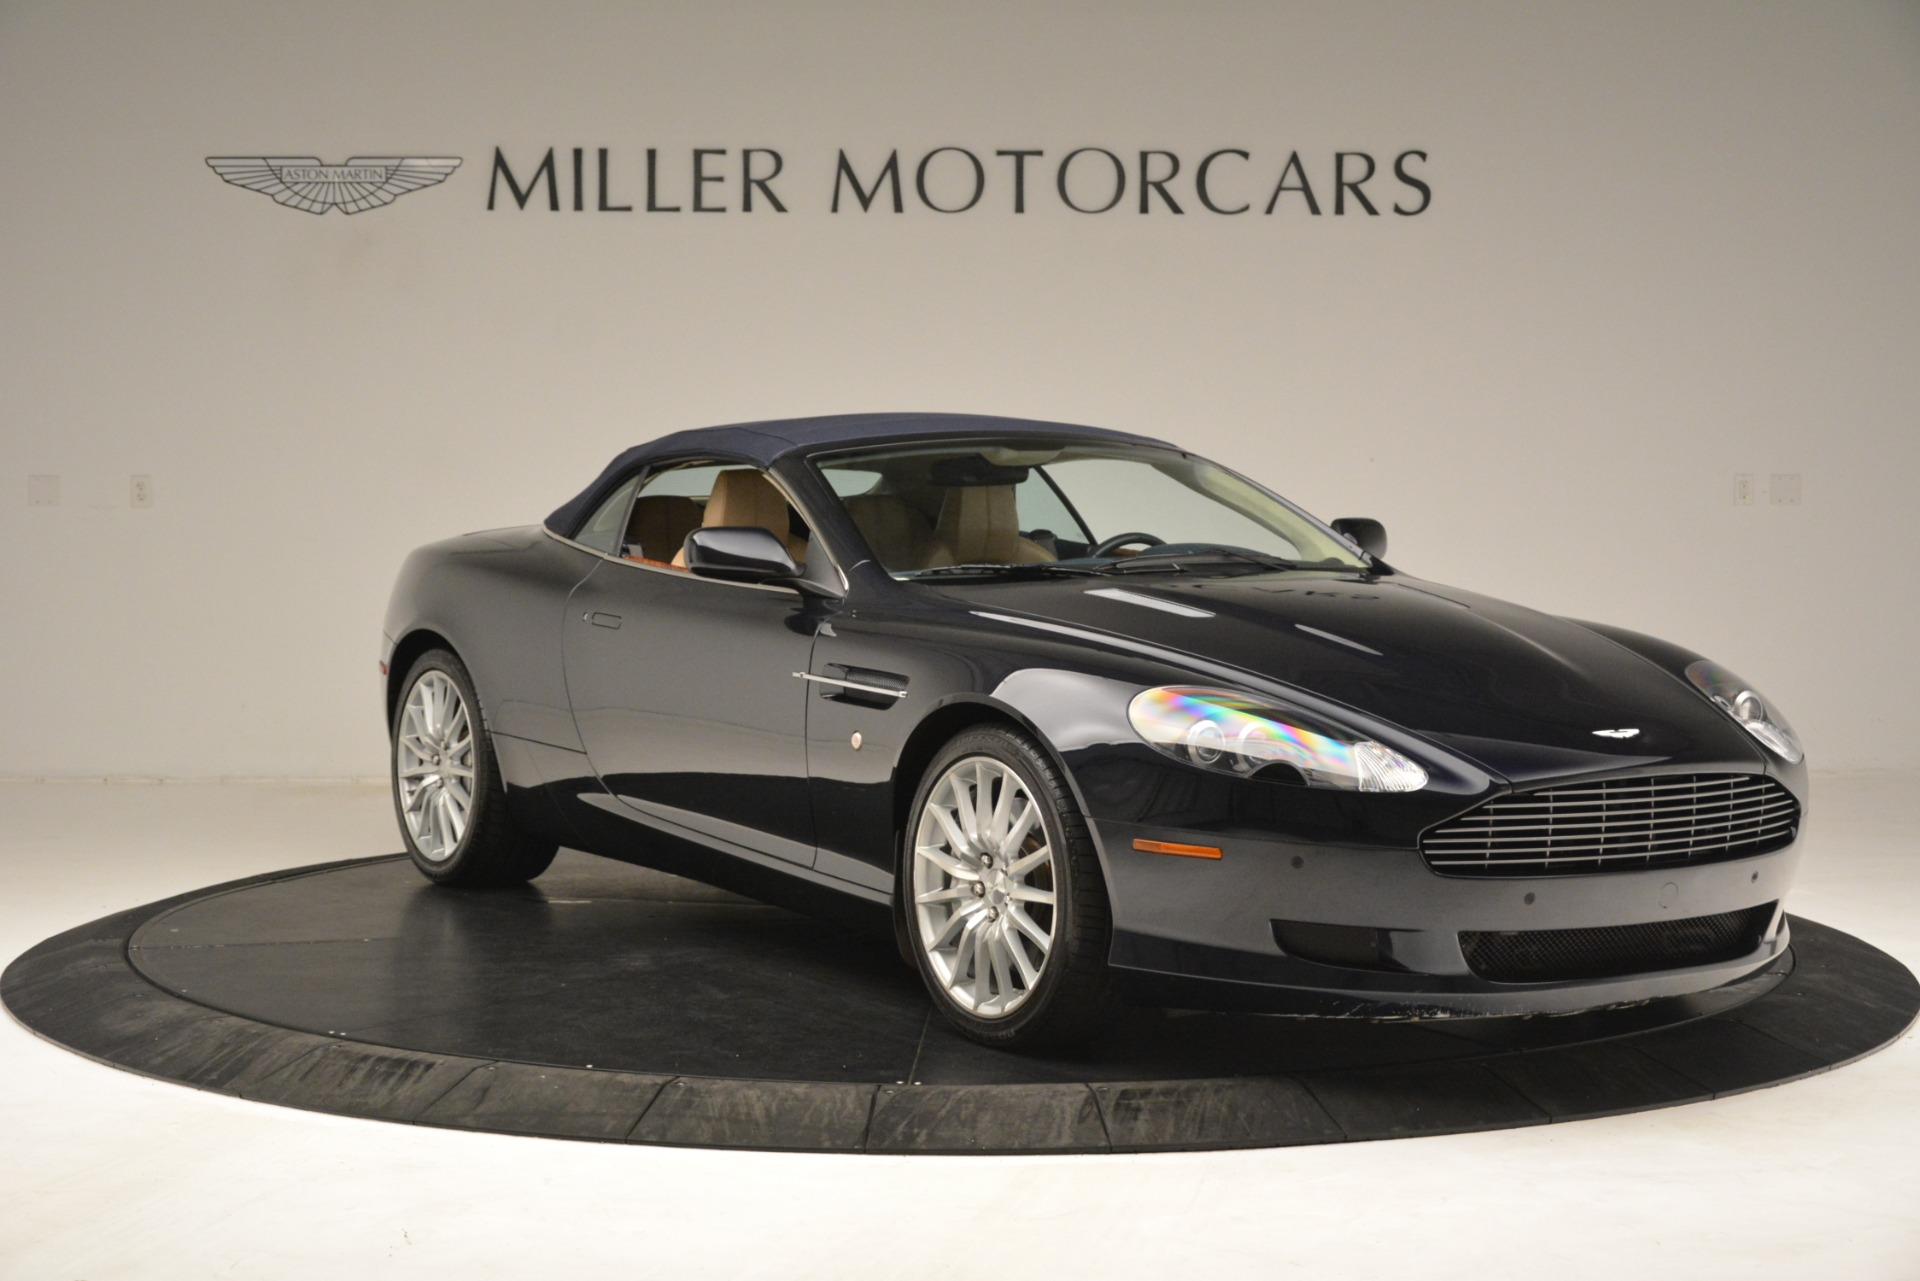 Pre Owned 2007 Aston Martin Db9 Convertible For Sale 67 900 Miller Motorcars Stock A1378a